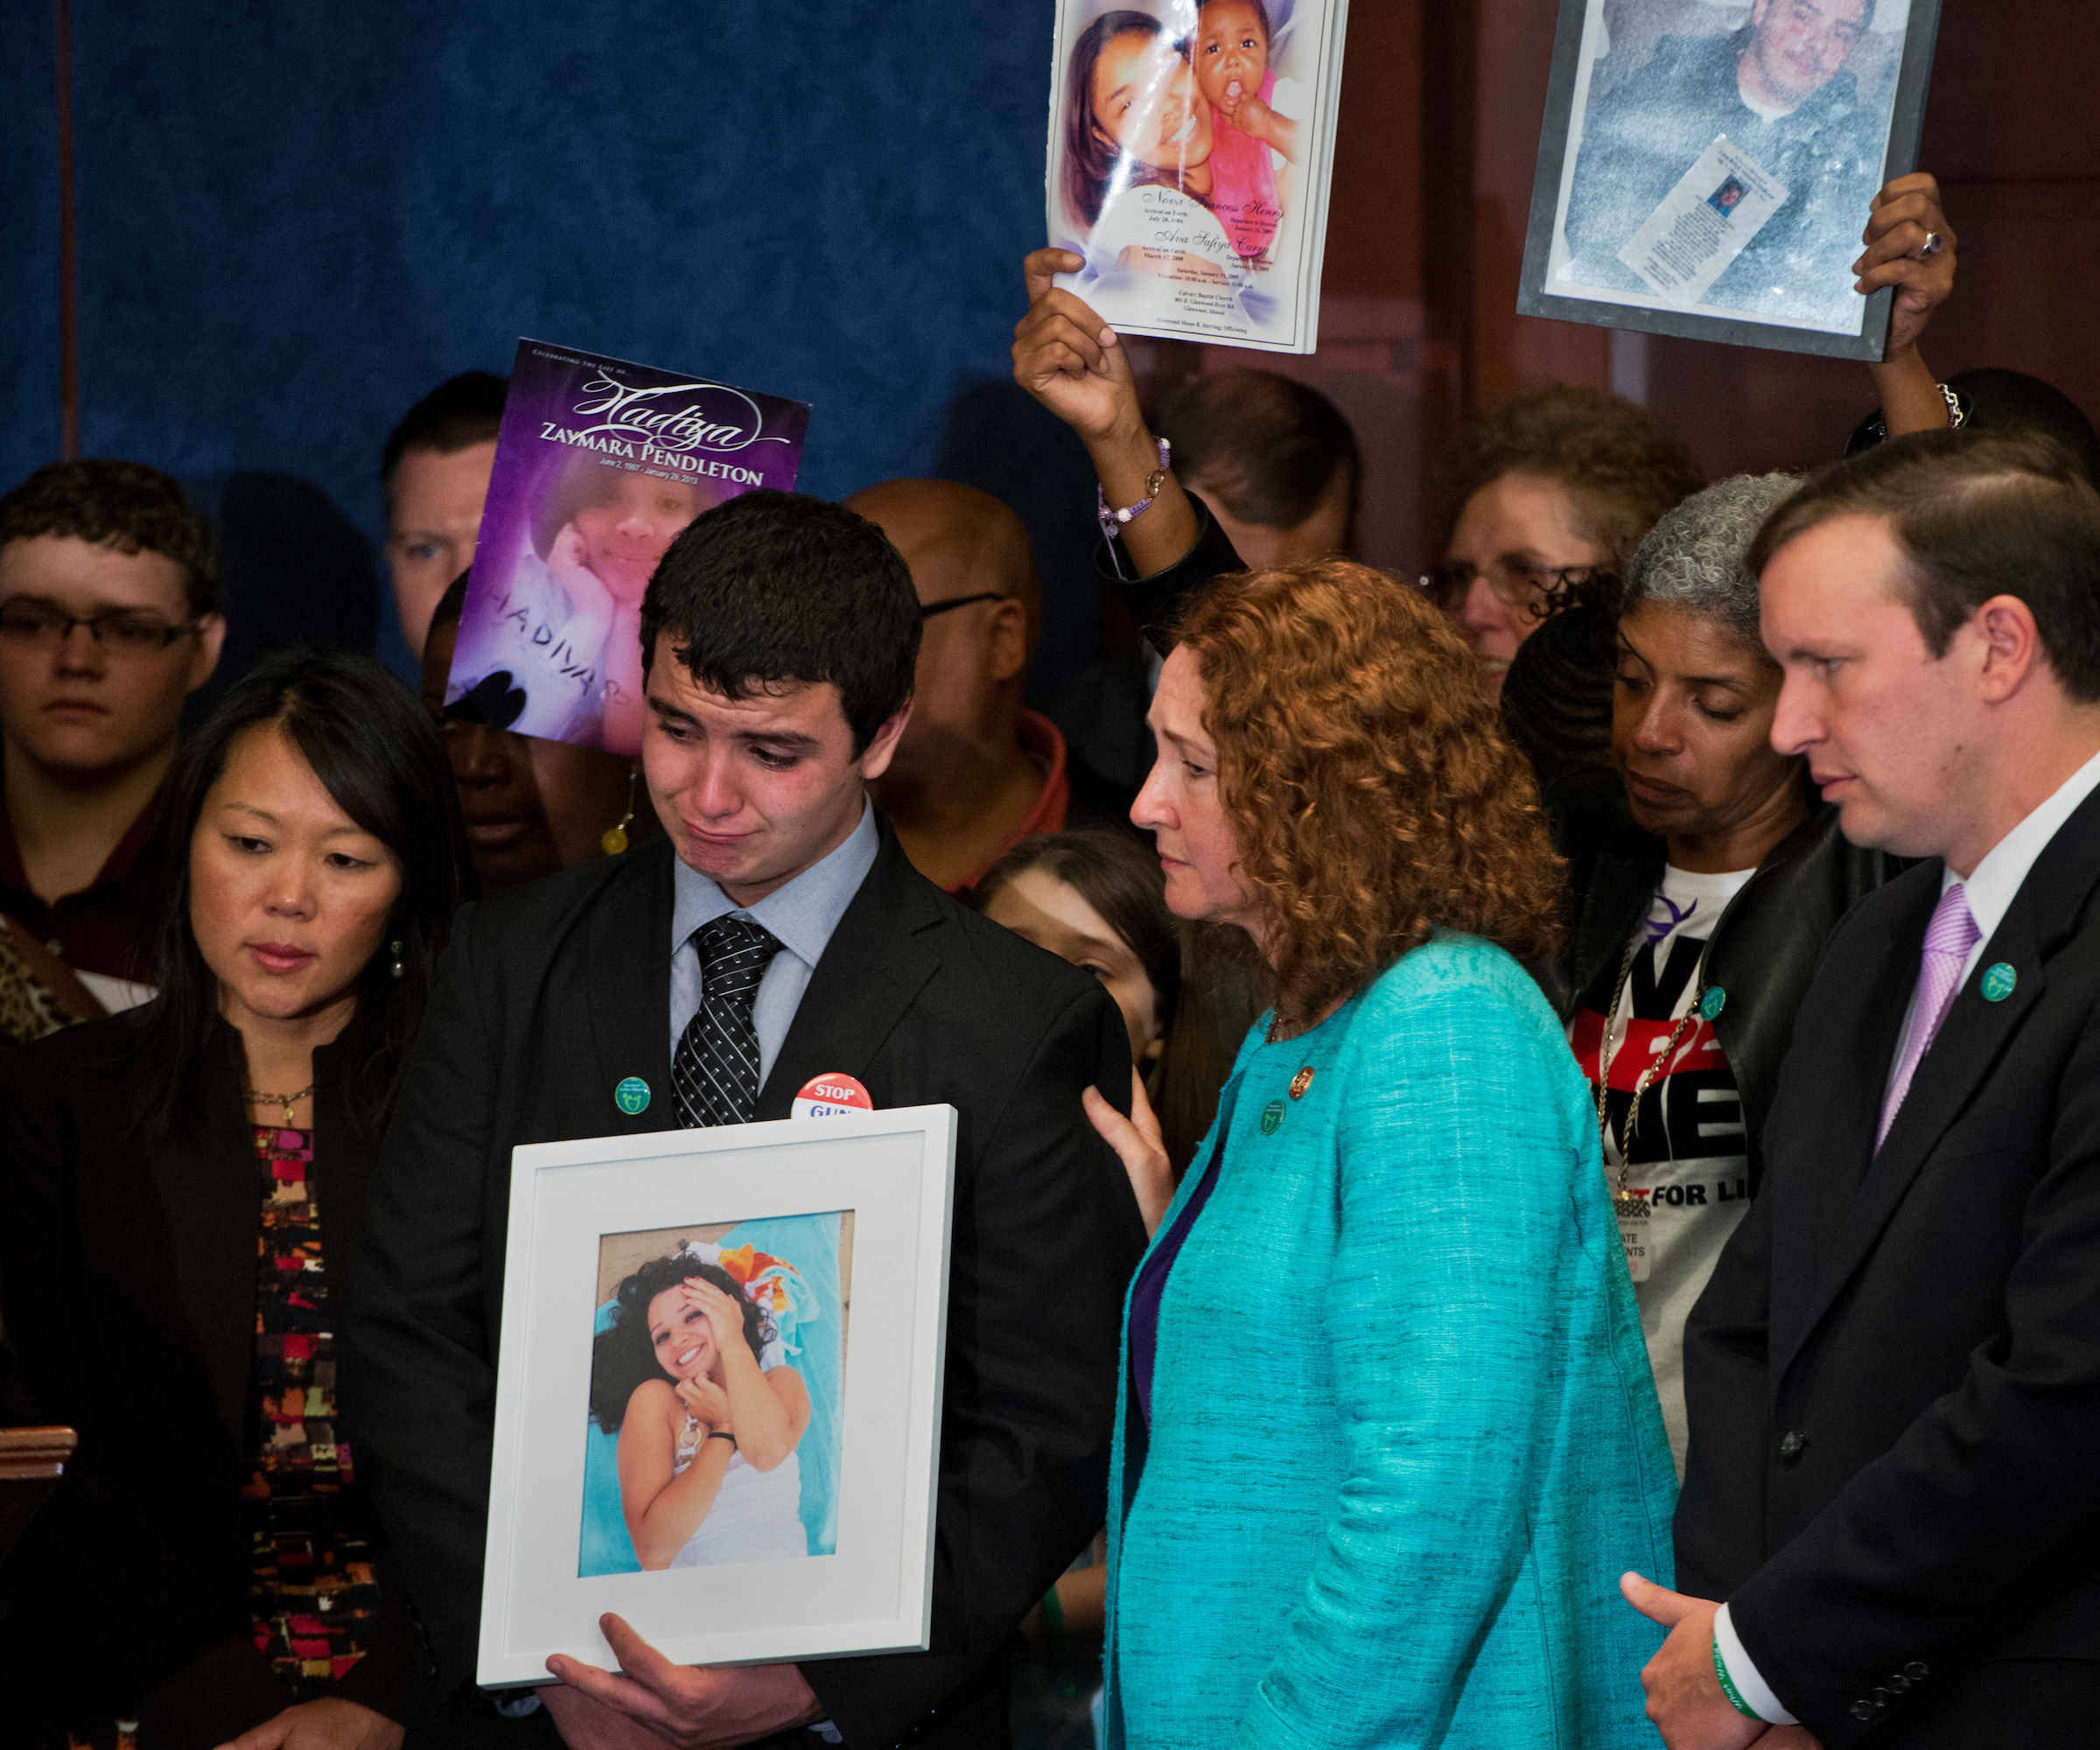 UNITED STATES - SEPTEMBER 18: Rep. Elizabeth Esty, D-Conn., comforts Carlos Soto, whose sister Victoria was a teacher killed in the Sandy Hook Elementary shooting, during an event in the Capitol Visitor Center to call on Congress to act on gun control legislation. Sen. Chris Murphy, D-Conn., appears at right. (Photo By Tom Williams/CQ Roll Call)